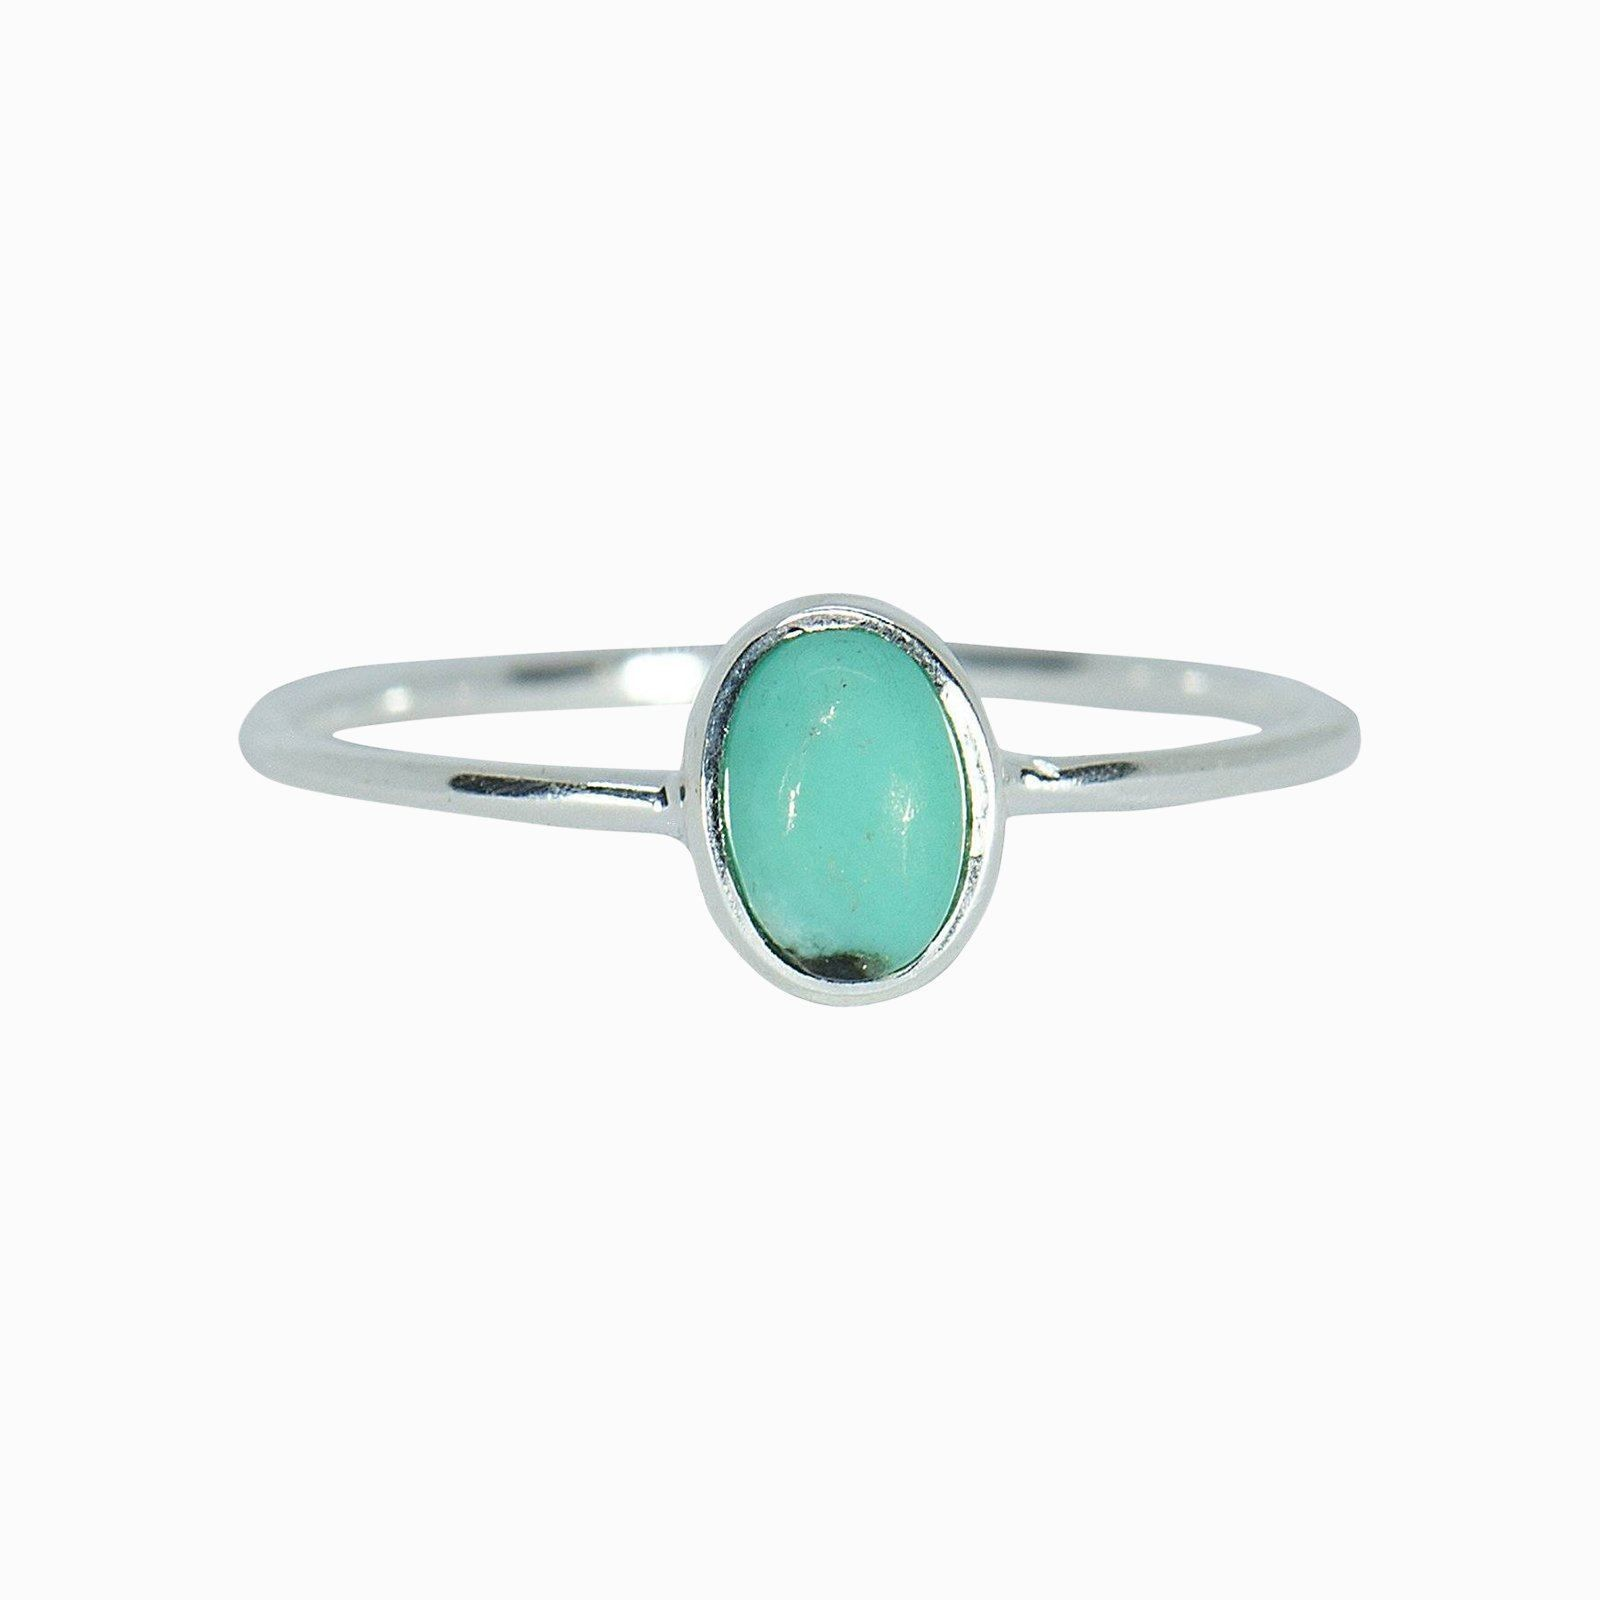 Details about  /White gold finish Turquoise And Created Diamond Oval Bracelet Free Gift Box